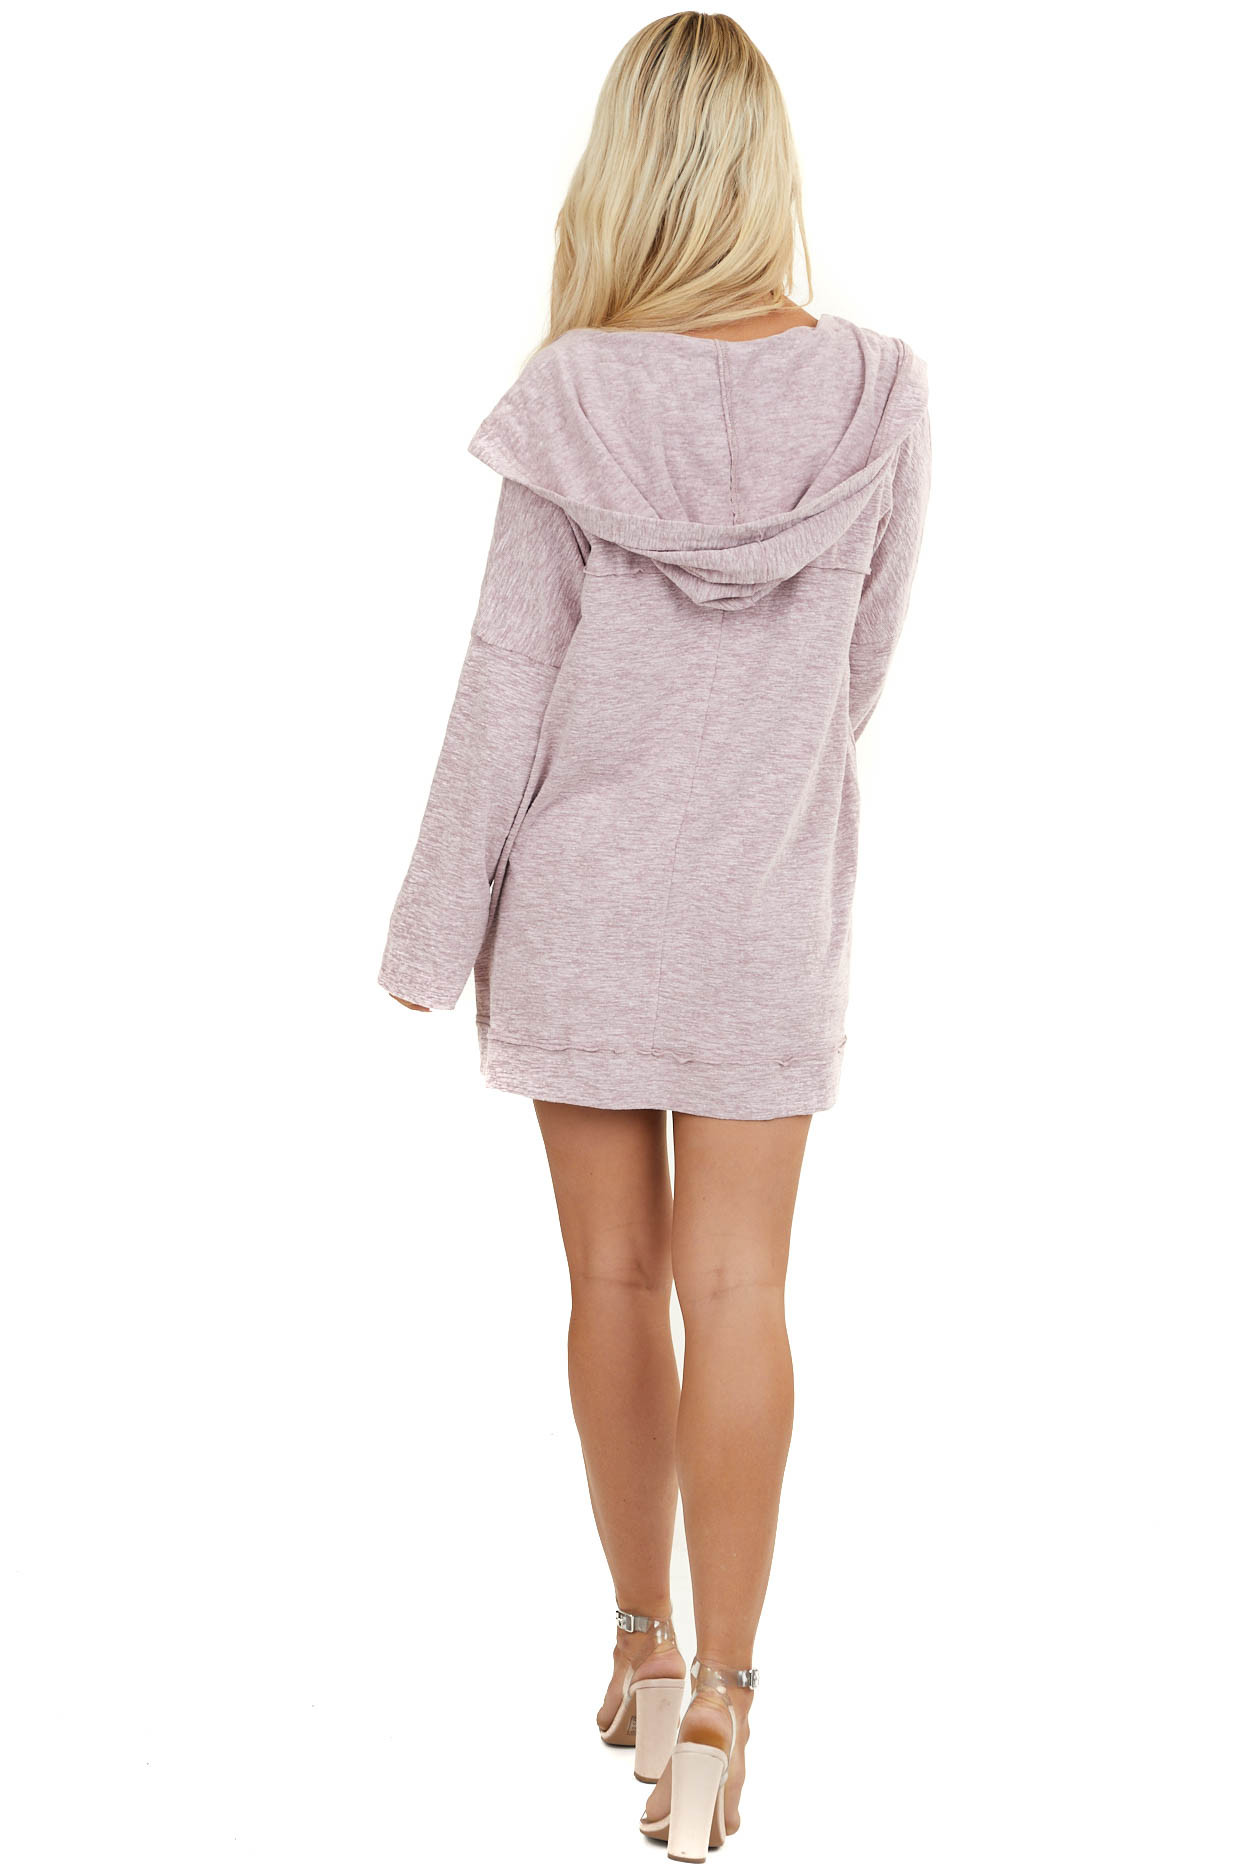 Heathered Mauve Hooded Cardigan with Front Pockets